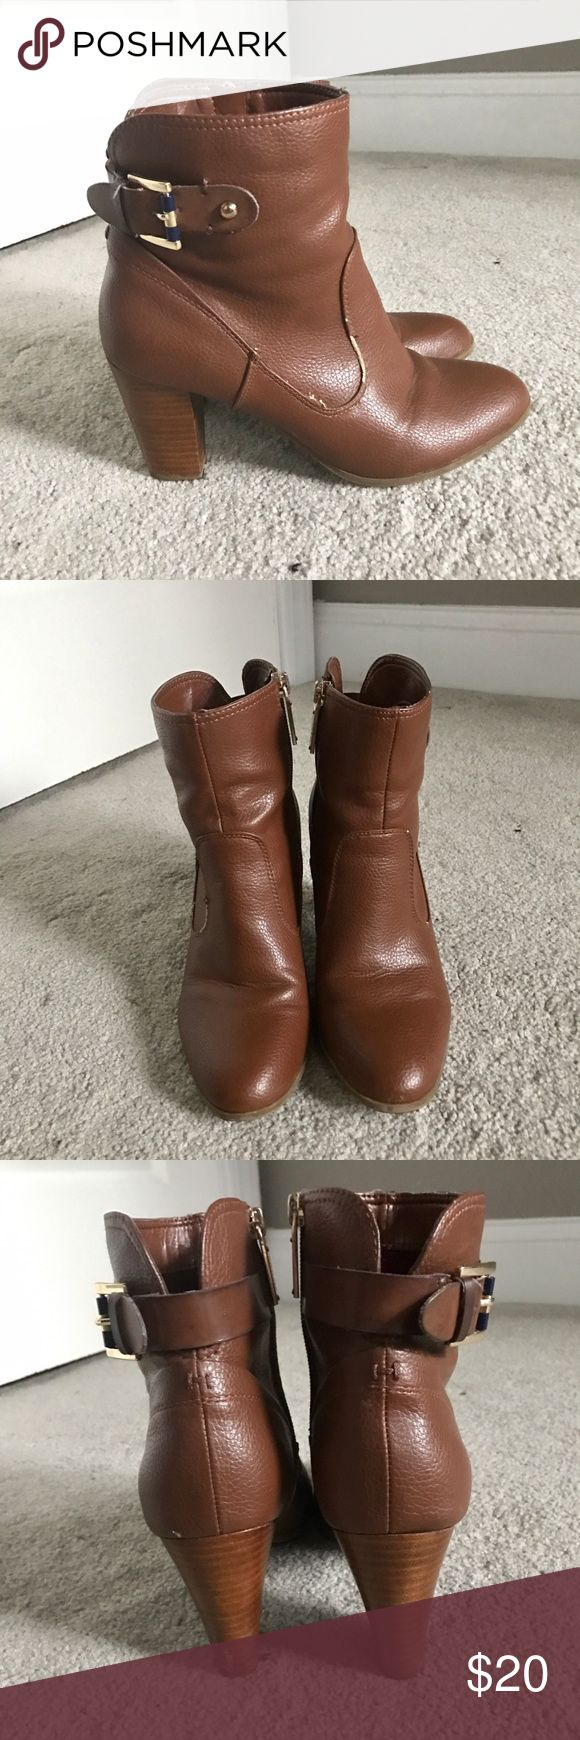 Tommy Hilfiger tan leather ankle booties Good condition with minor unnoticeable flaws. Great tan leather ankle bootie to dress up or down. 3 inch heel. Tommy Hilfiger Shoes Ankle Boots & Booties